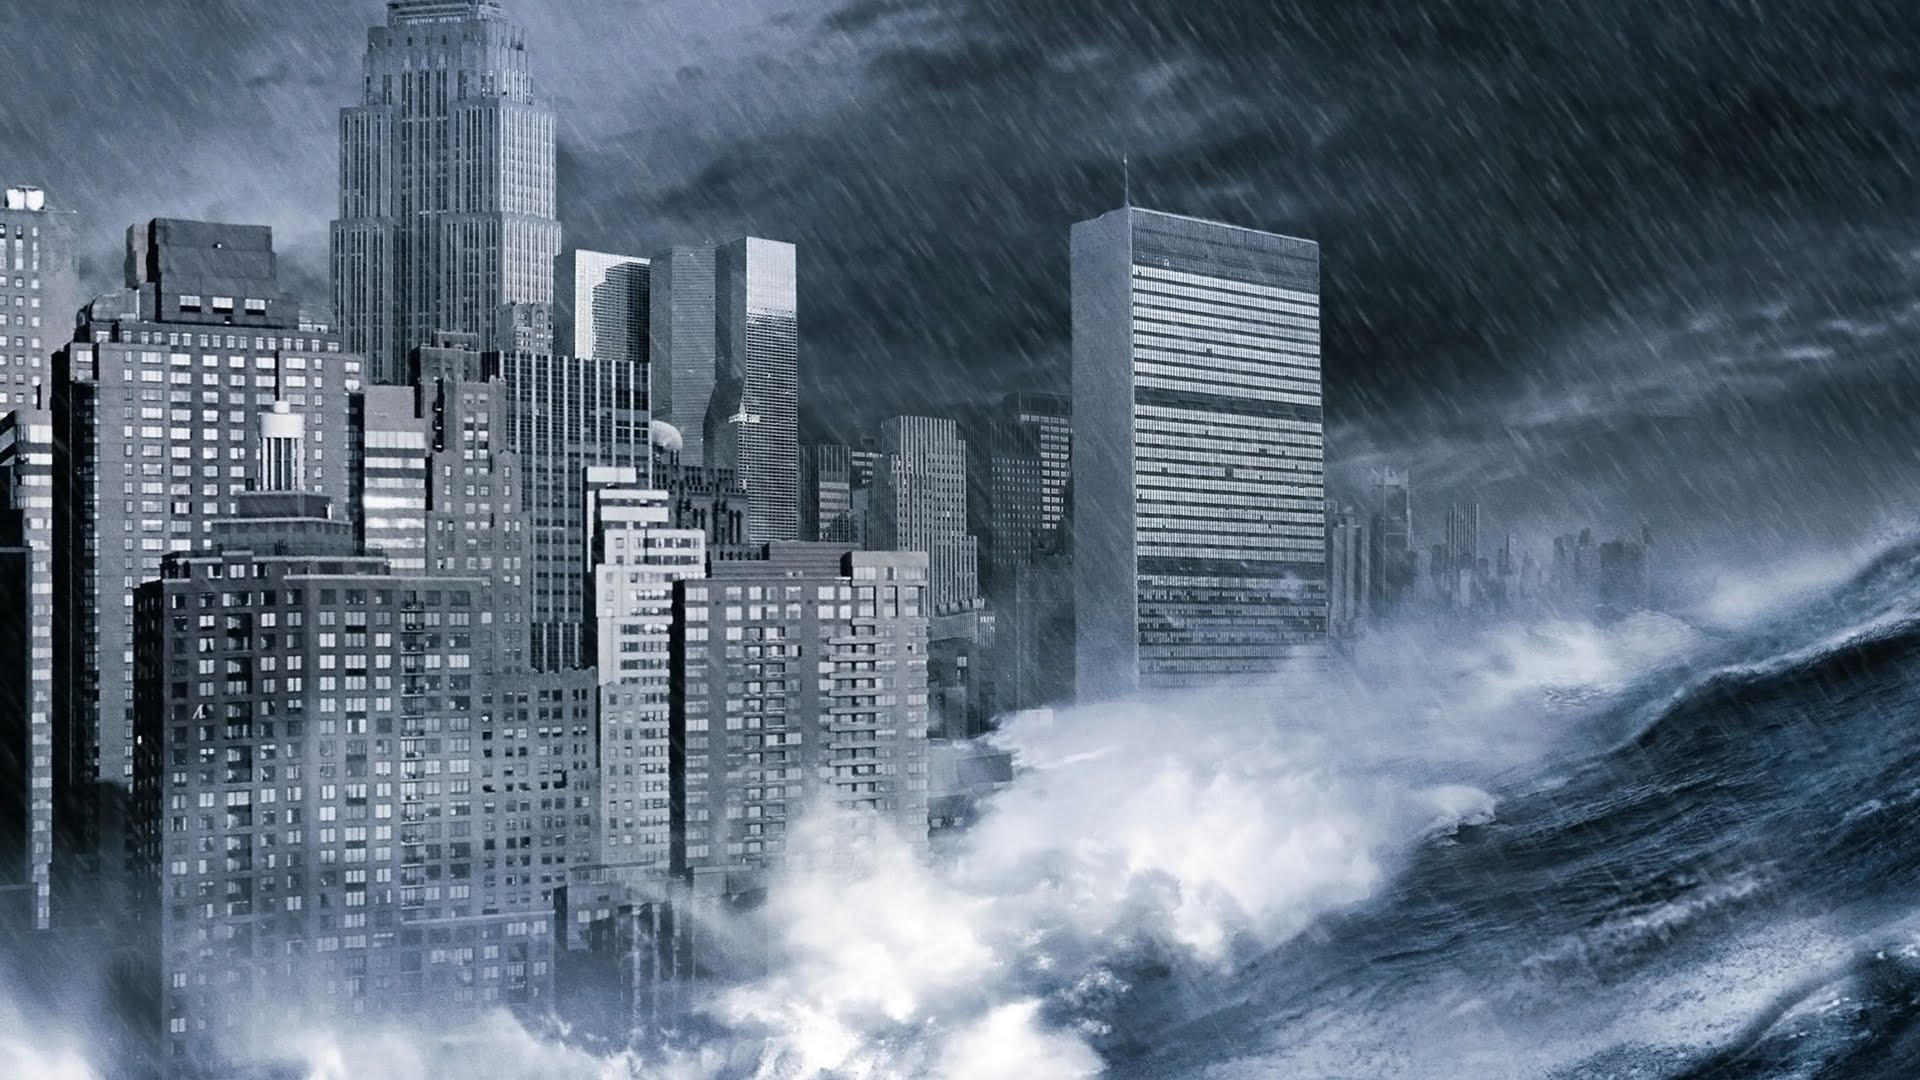 1920x1080 Natural Disasters Earthquake Pictures Wallpapers Downloads - Day ...